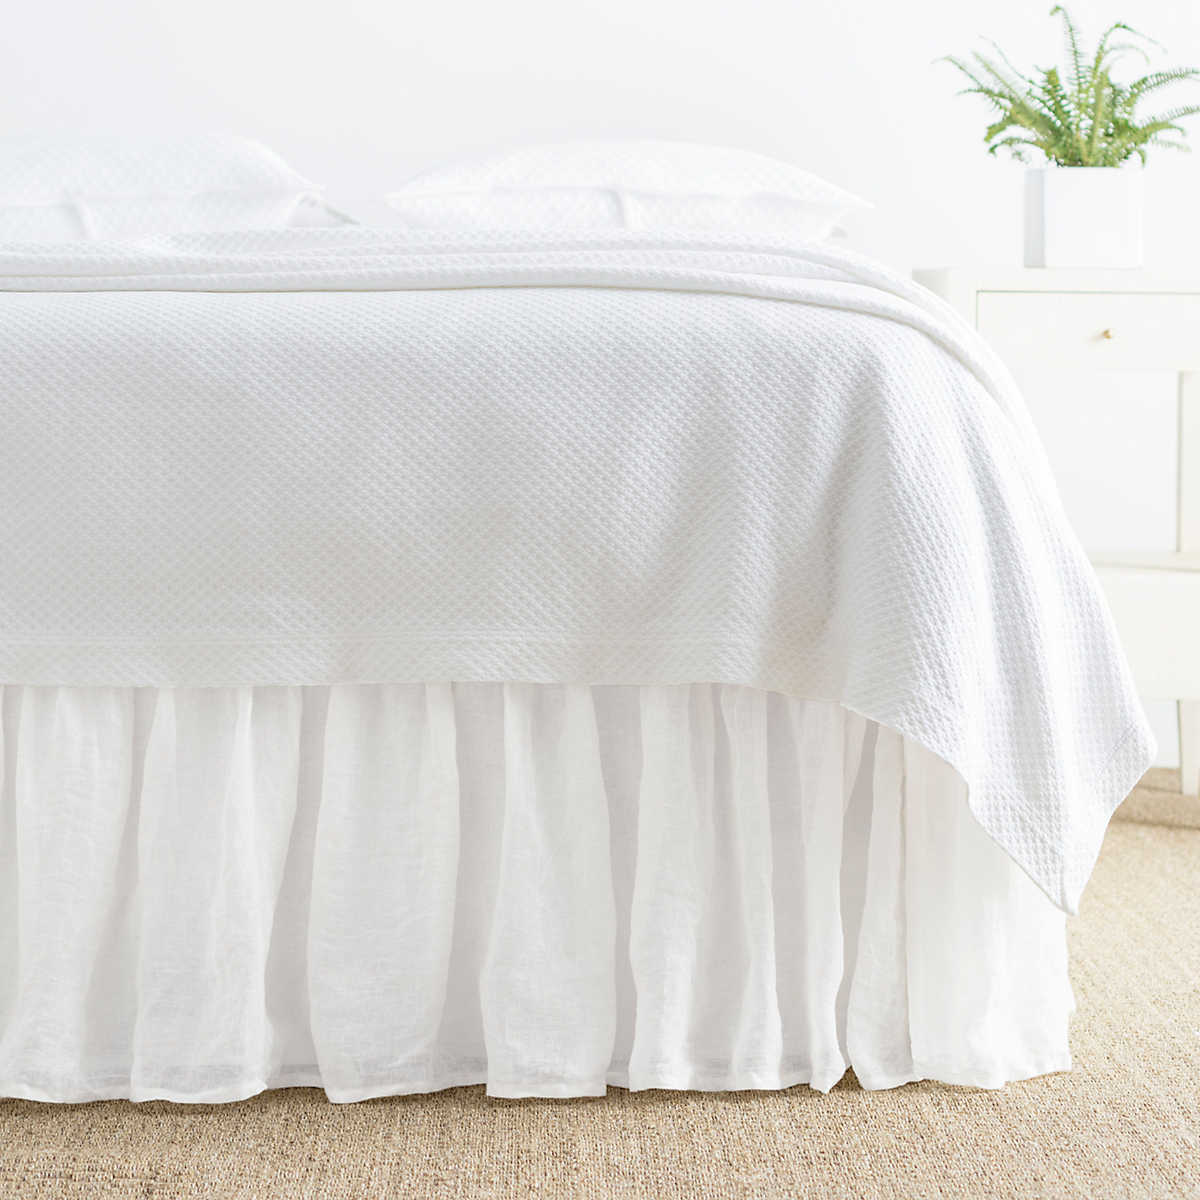 Shop our best selection of Queen Size Bed Skirts to reflect your style and inspire your home. Find the perfect furniture & decor for your bedroom or bathroom at Hayneedle, where you can buy online while you explore our room designs and curated looks for tips, ideas & inspiration to help you along the way.